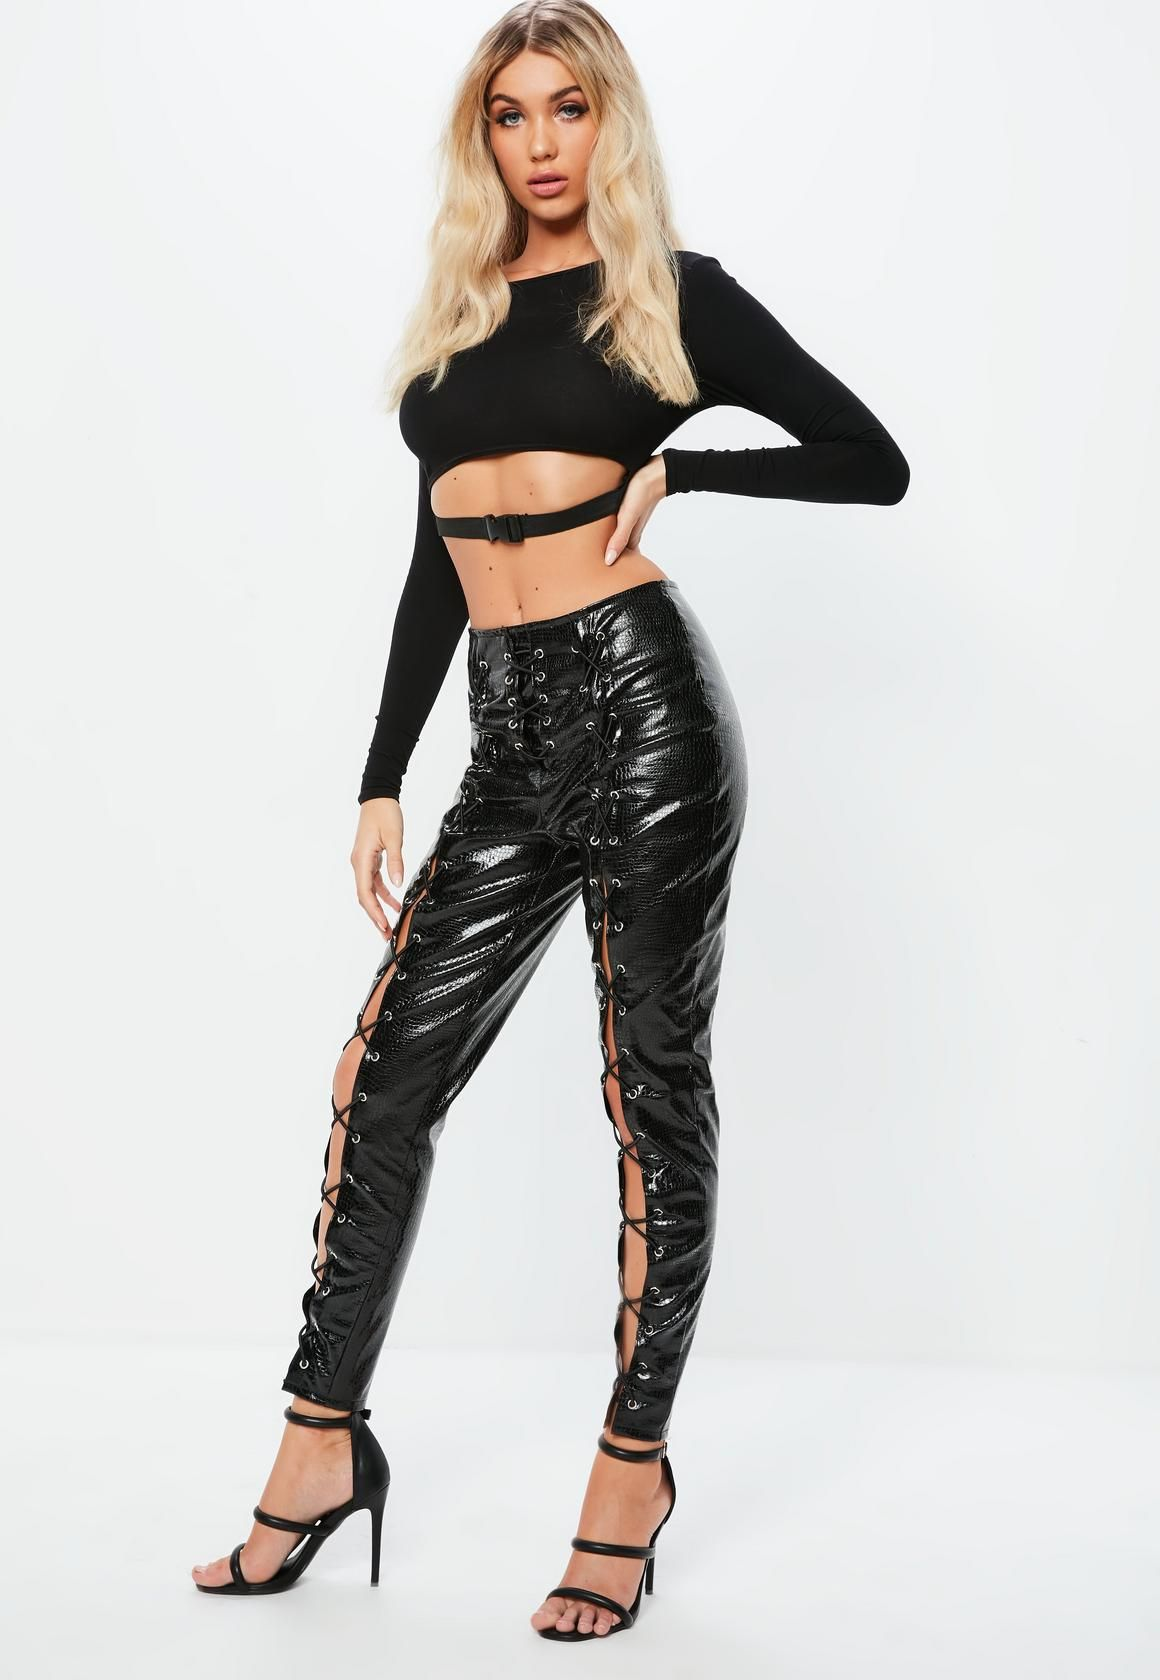 842059711c9f2f Missguided - Fanny Lyckman x Missguided Black High Waisted Lace Up Leggings